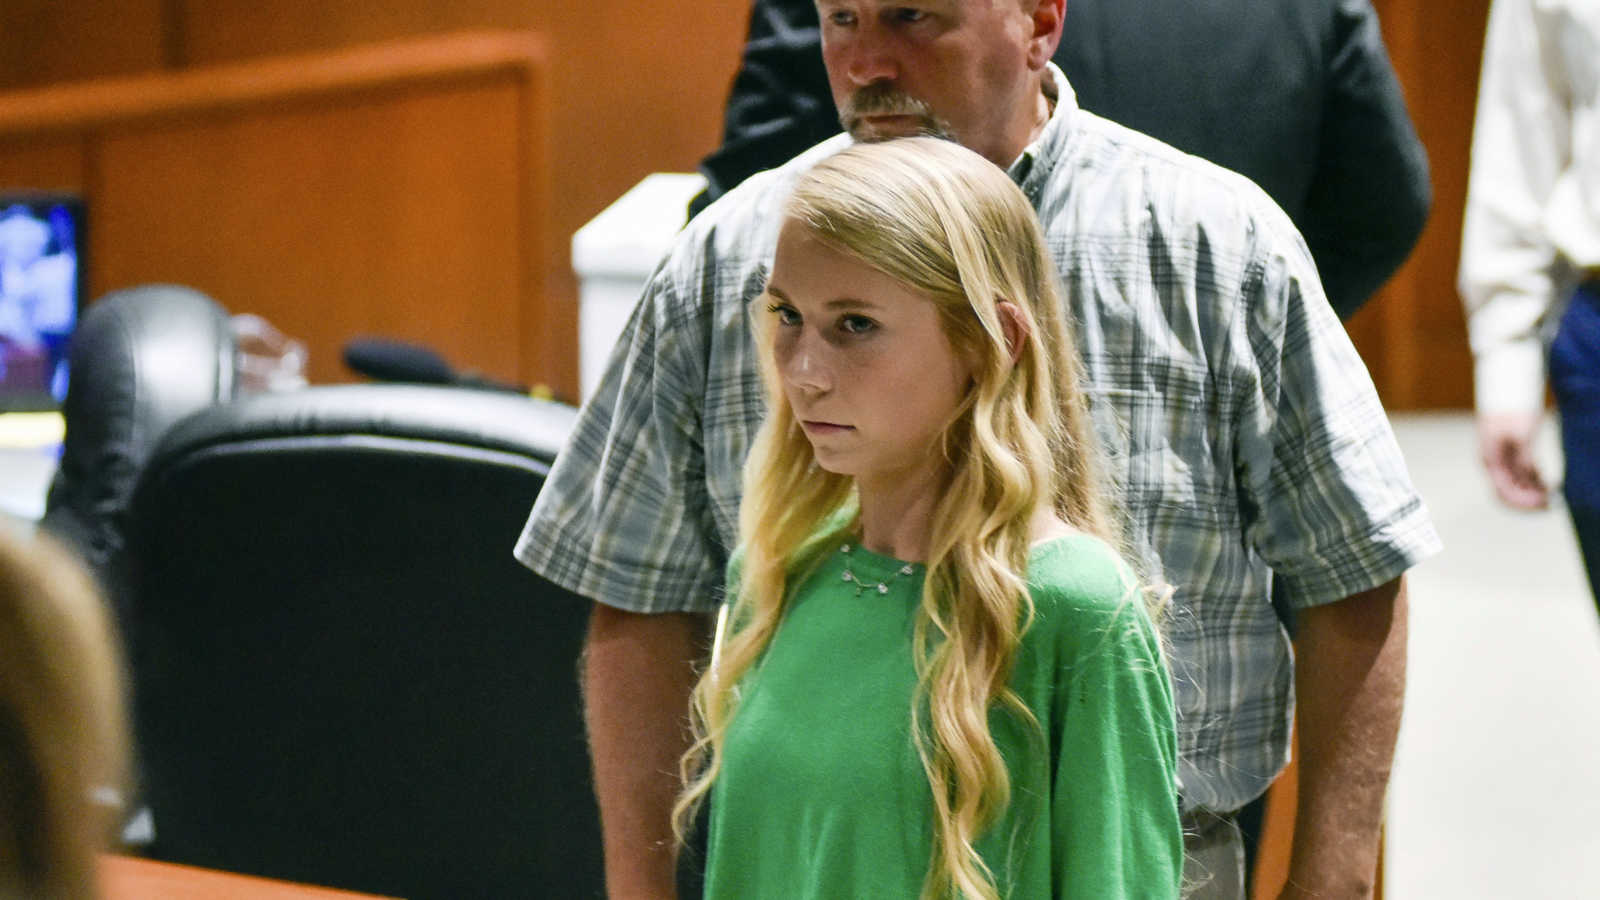 Cheerleader murder trial: Brooke Skylar Richardson searches how to 'get rid of a baby' before killing, burying newborn, prosecution says – CrimeOnline